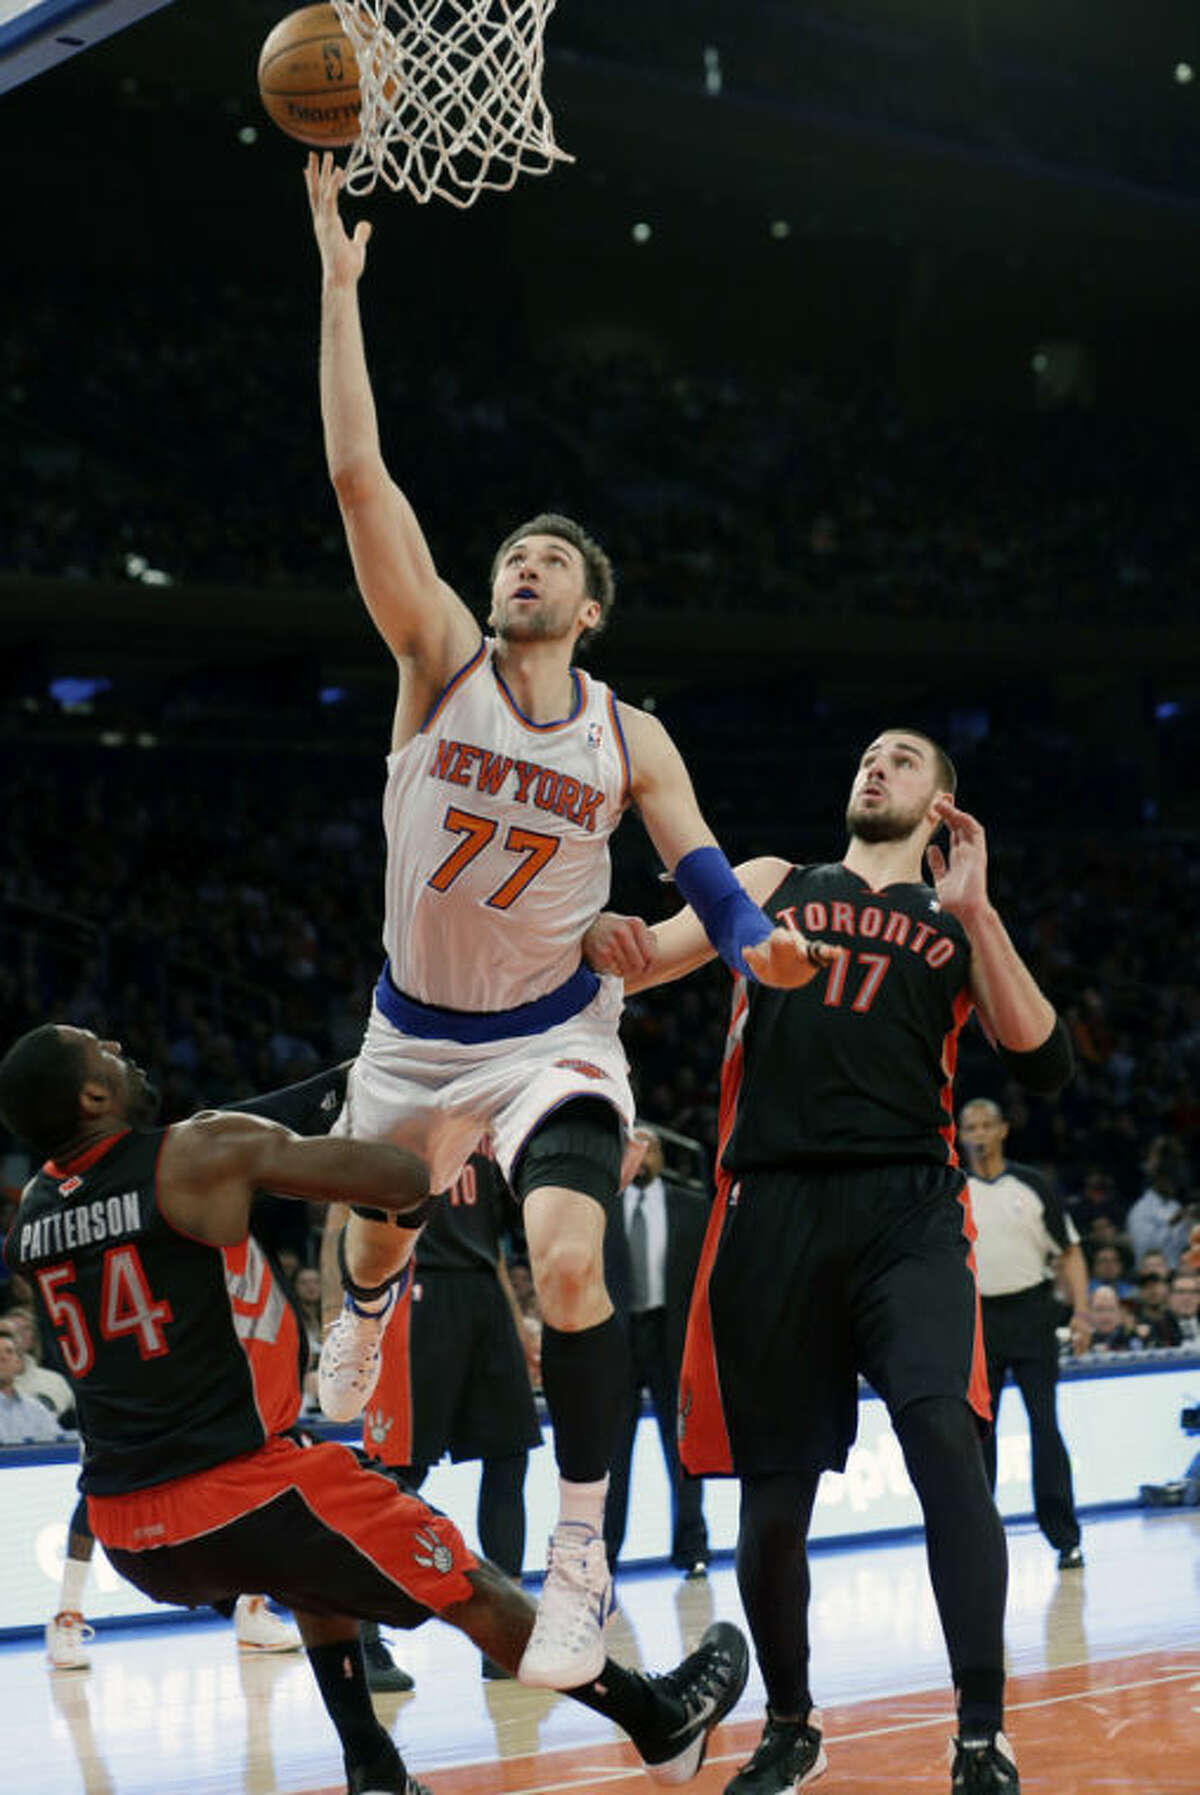 New York Knicks' Andrea Bargnani (77), of Italy, shoots over Toronto Raptors' Patrick Patterson (54) as Jonas Valanciunas (17), of Lithuania, stands near during the first half of an NBA basketball game Friday, Dec. 27, 2013, in New York. (AP Photo/Frank Franklin II)